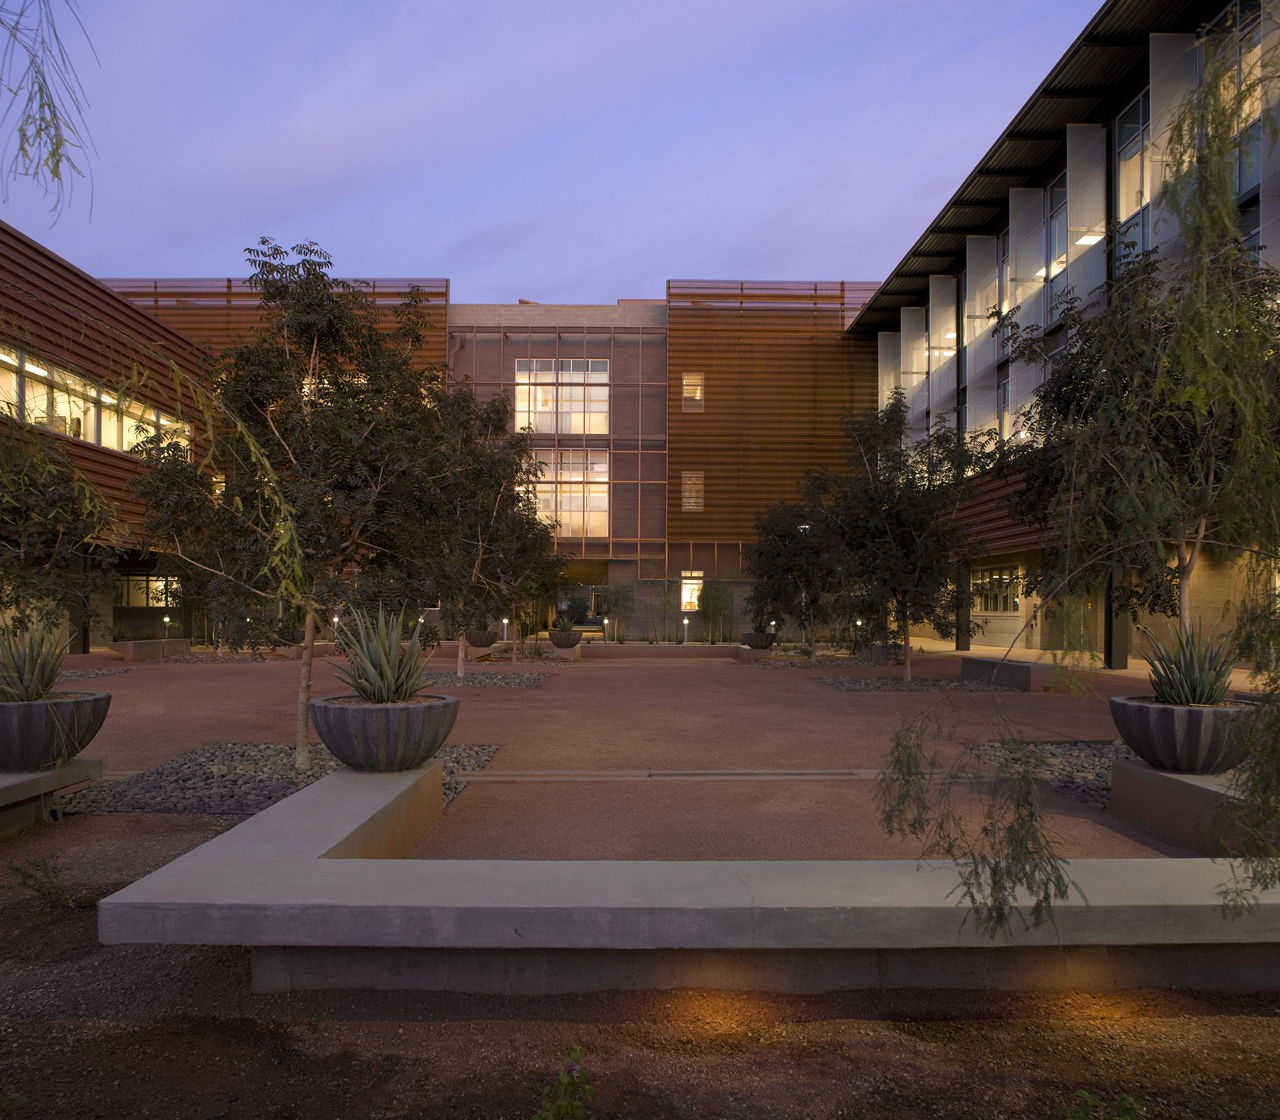 Gallery of asu polytechnic campus lake flato architects for Rsp architects